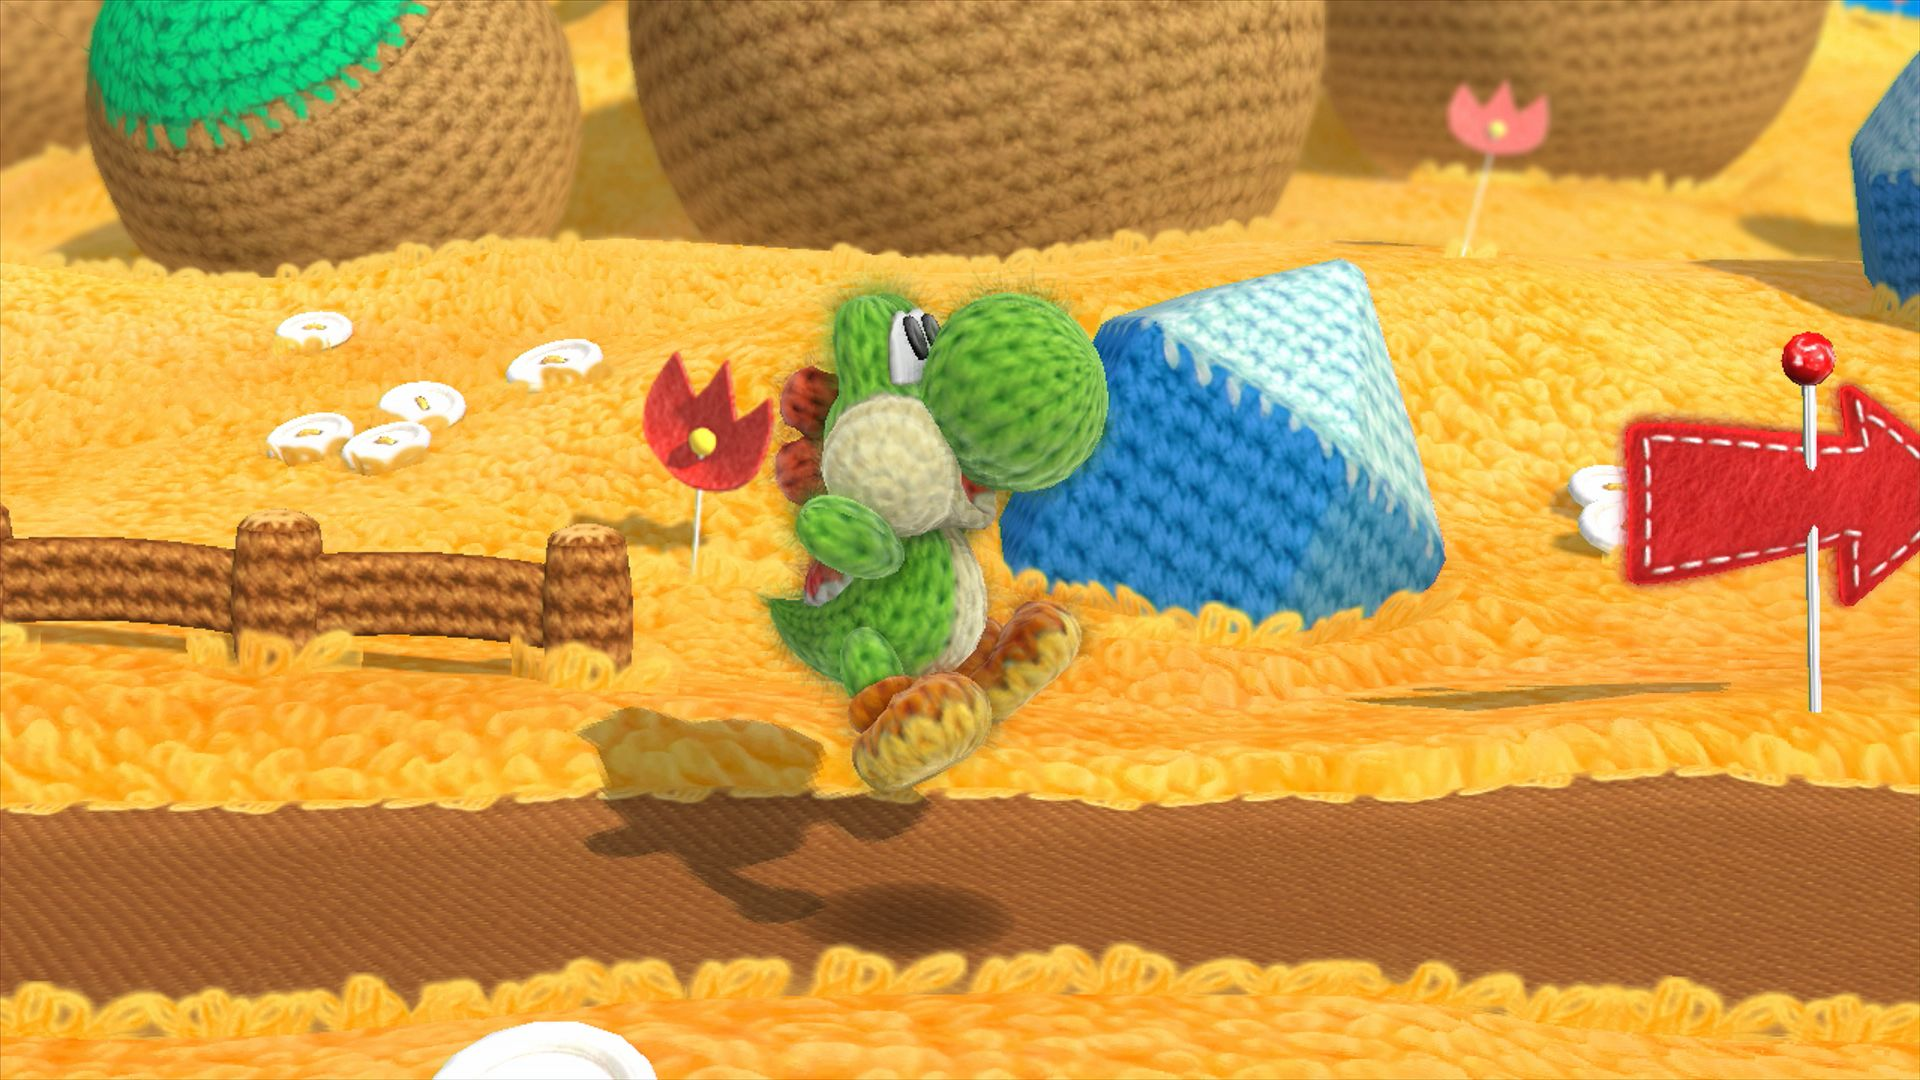 yoshis woolly world 11062014 1